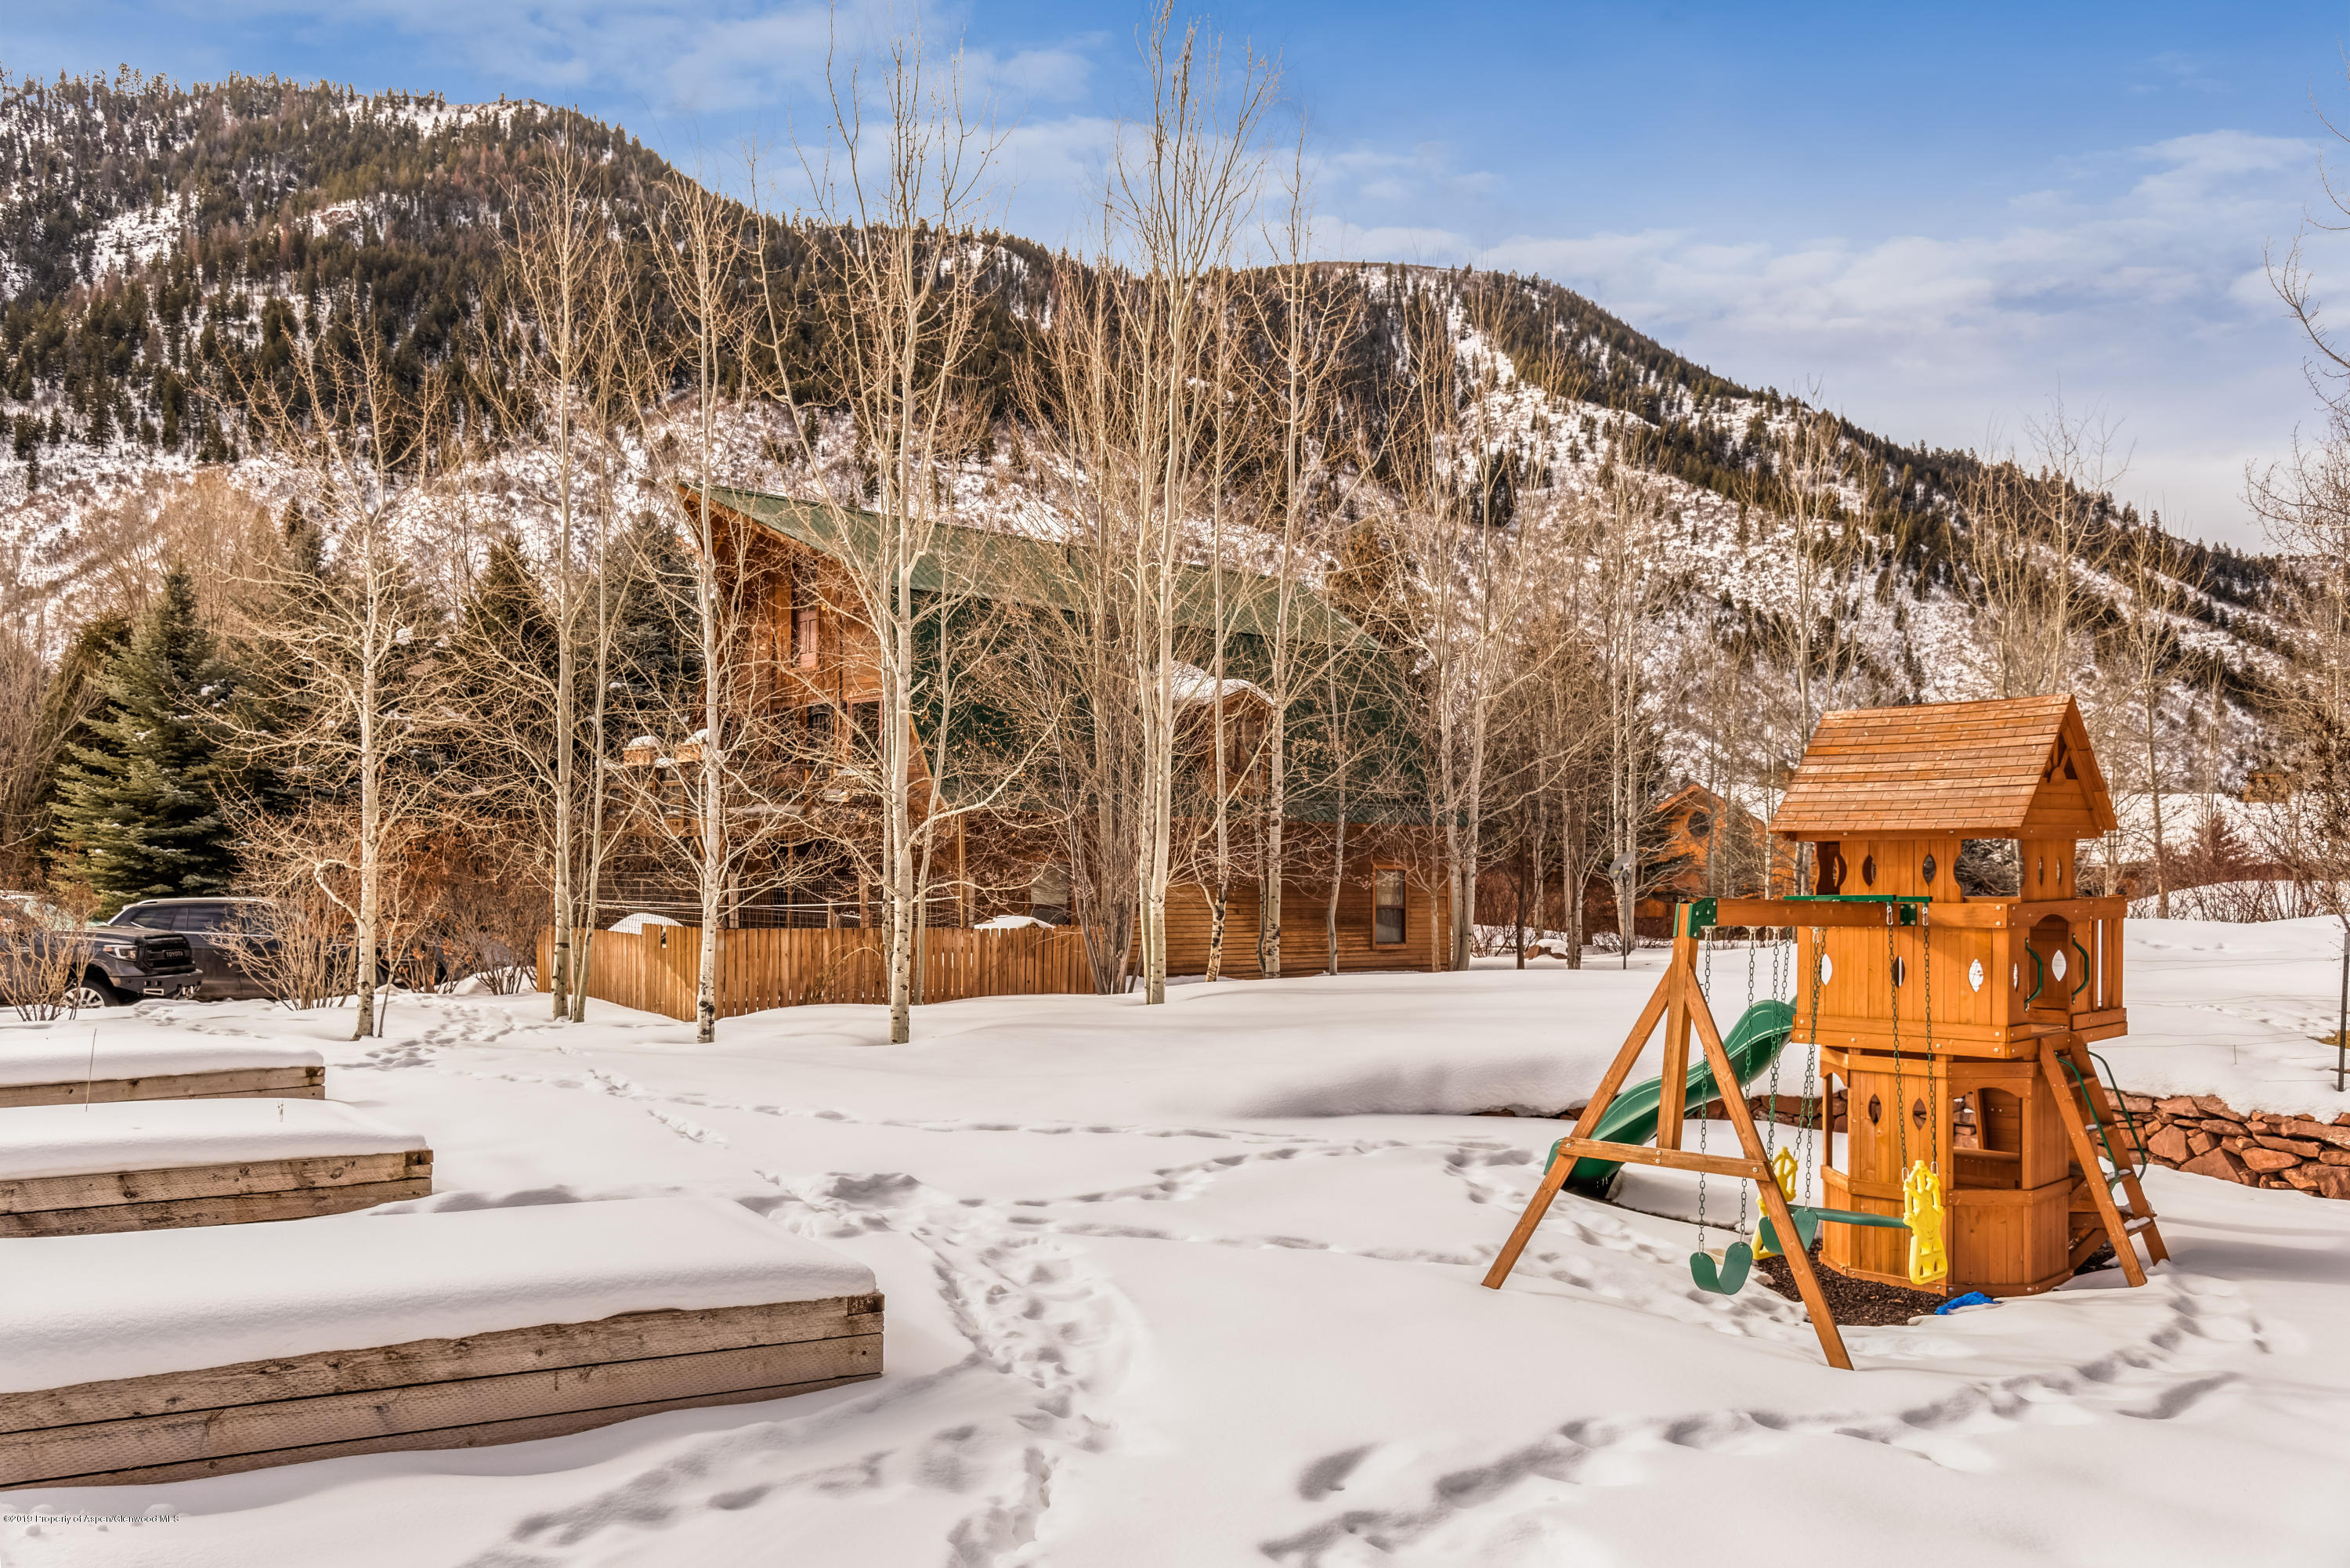 MLS# 135595 - 73 - 50 E River Ranch Road, Snowmass, CO 81654